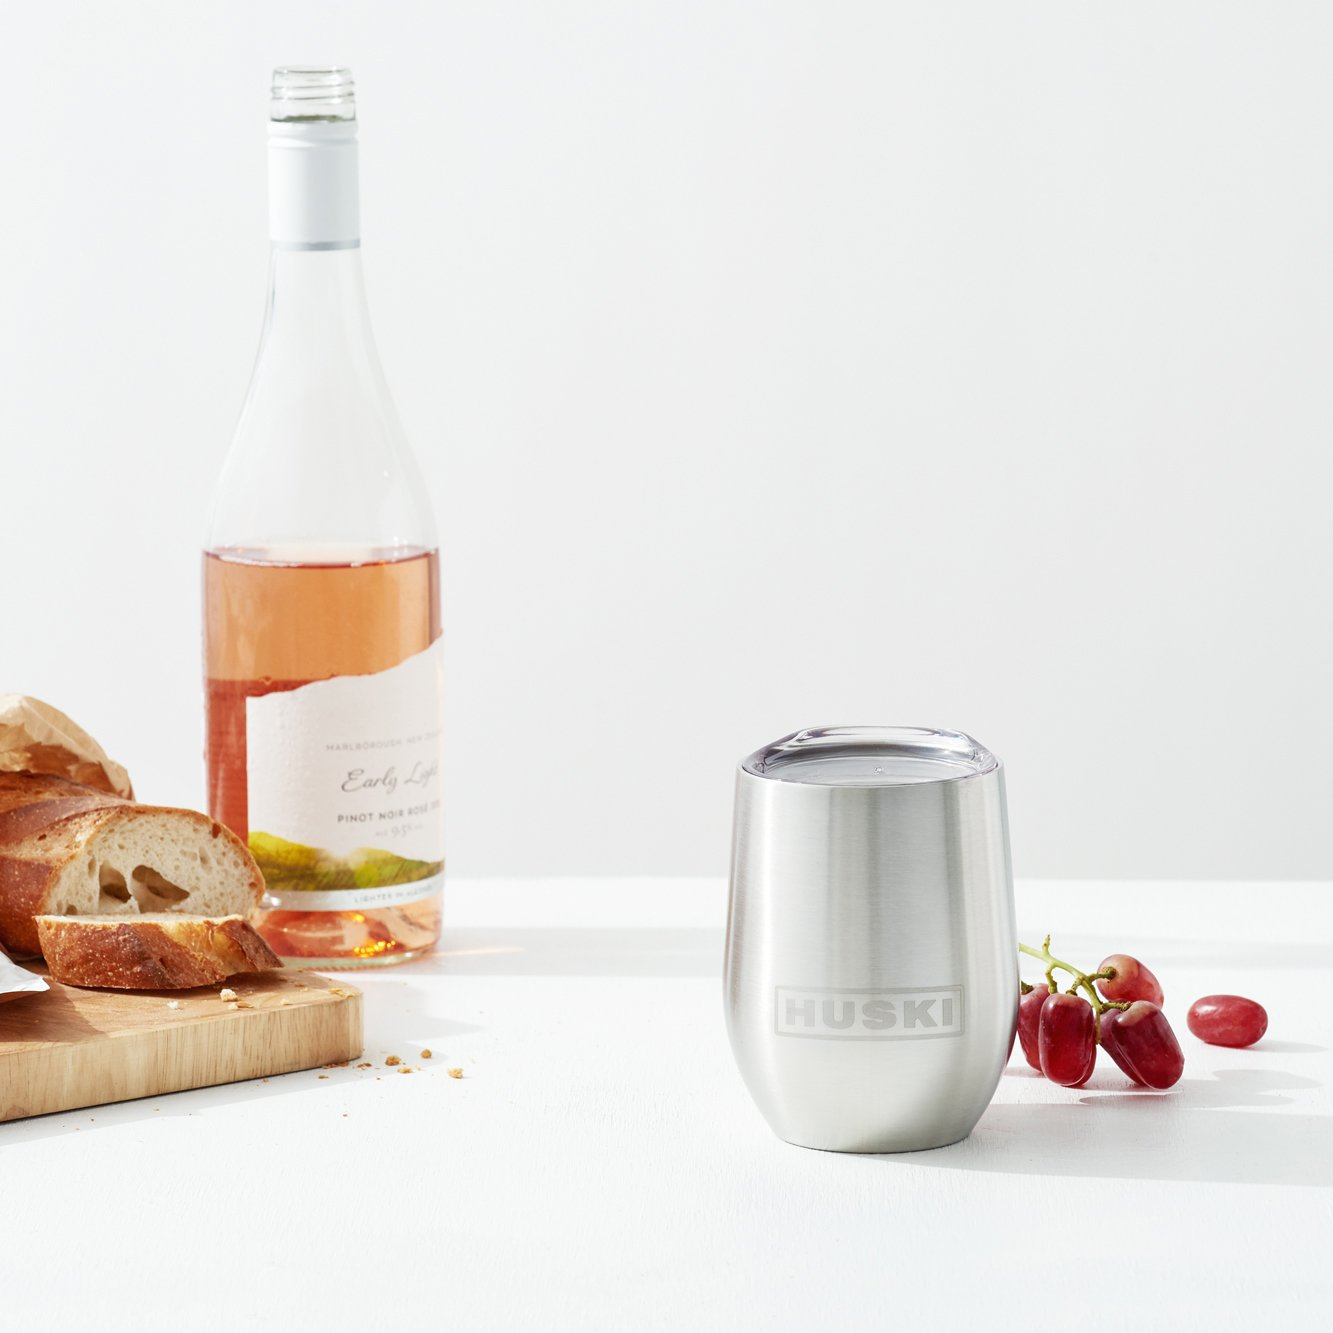 HUSKI - Wine Tumbler Rose